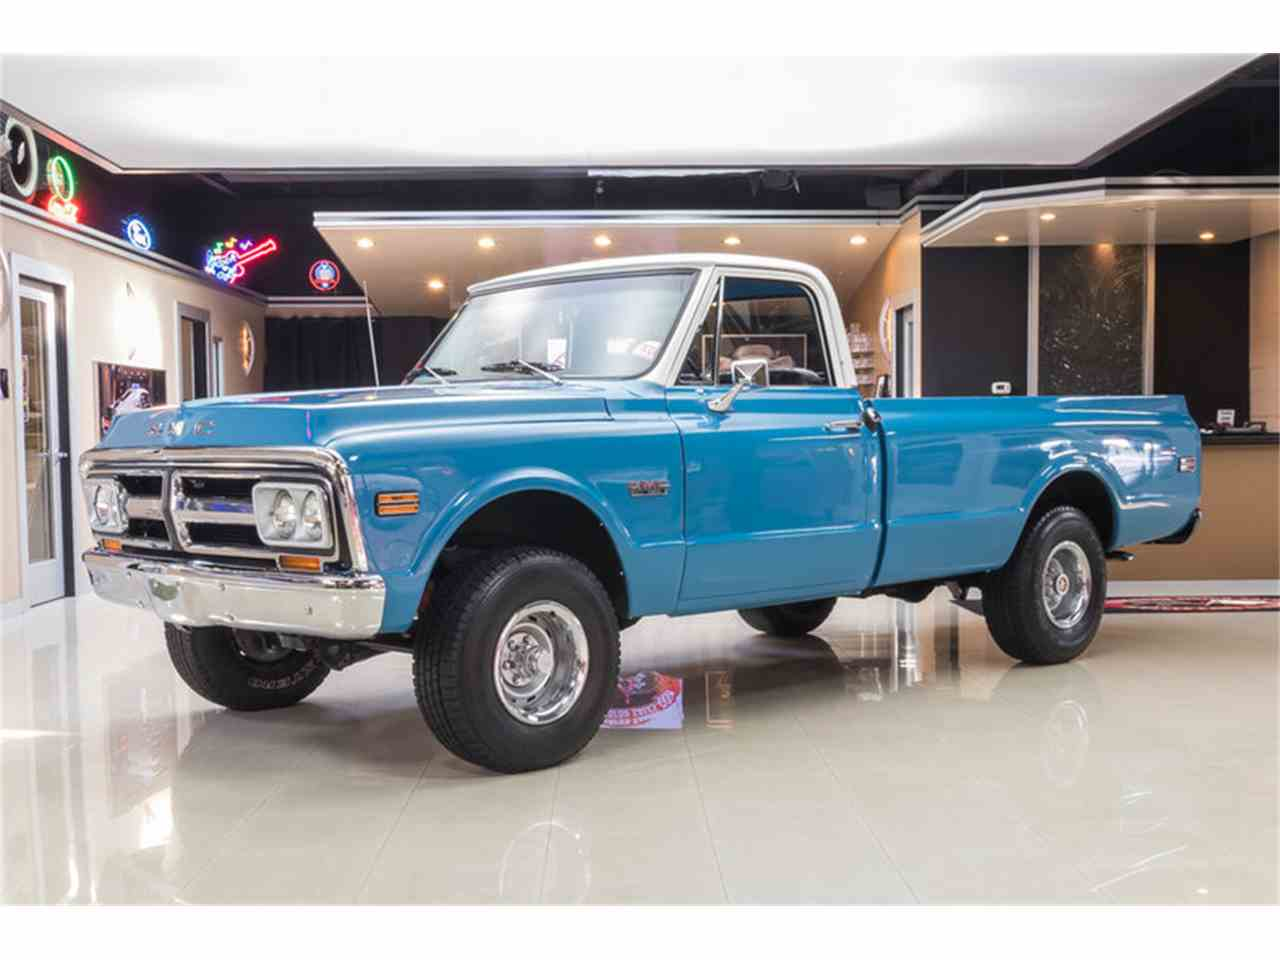 1970 to 1972 GMC Pickup for Sale on ClassicCars.com